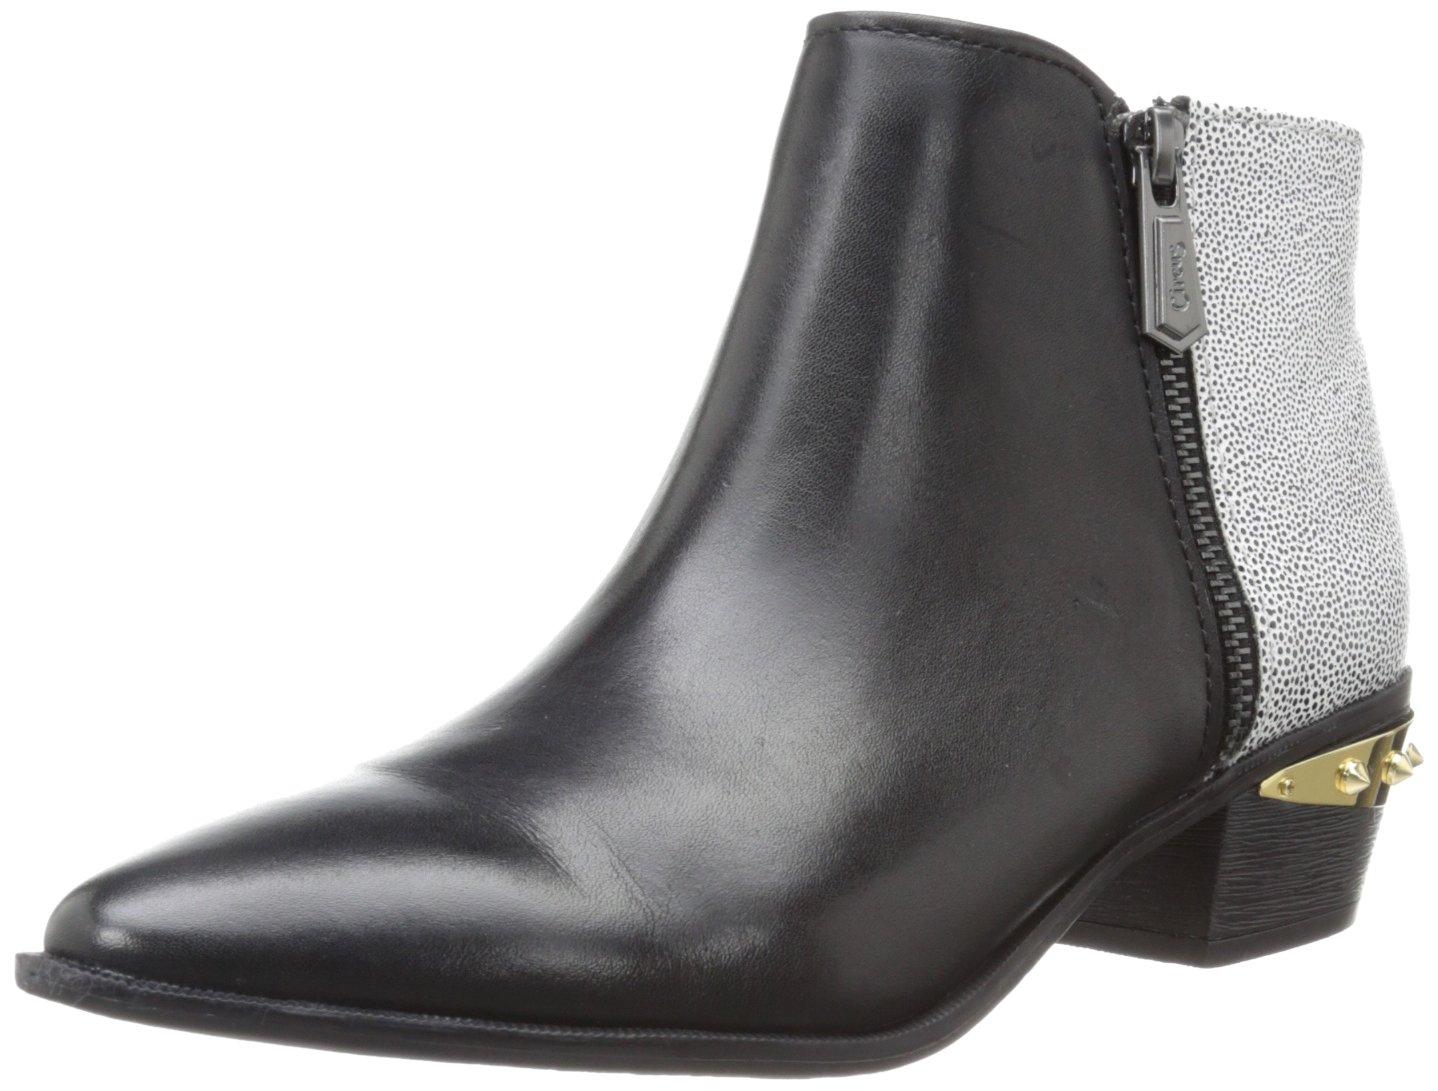 Circus by Sam Edelman Women's Holt Ankle Boot B00BF2H2DU 7 B(M) US|Black/White